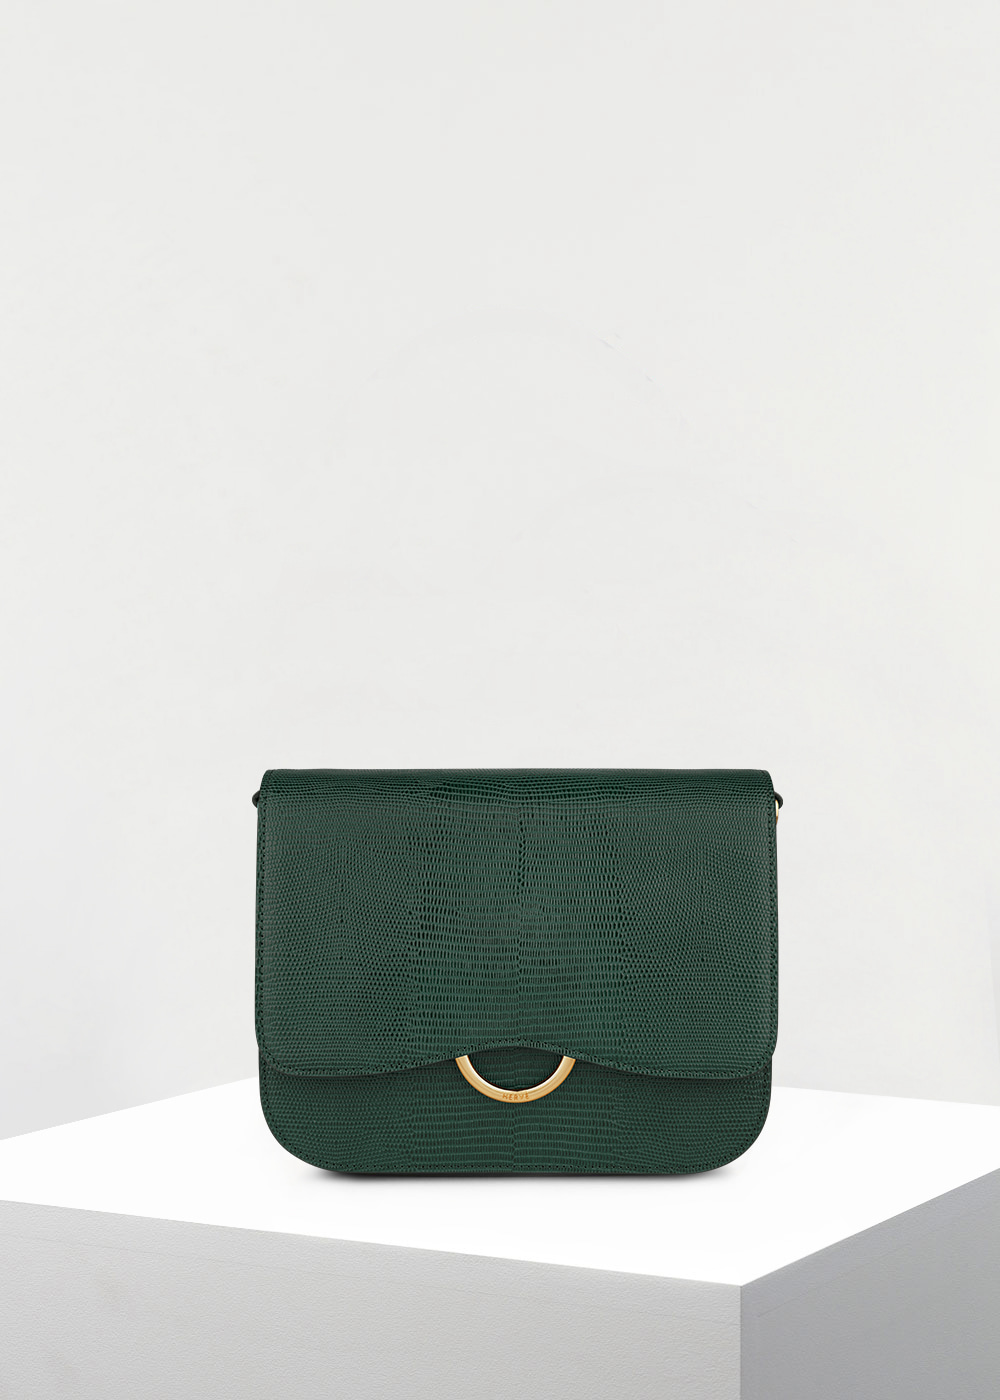 LONDE BAG_LIZARD GREEN